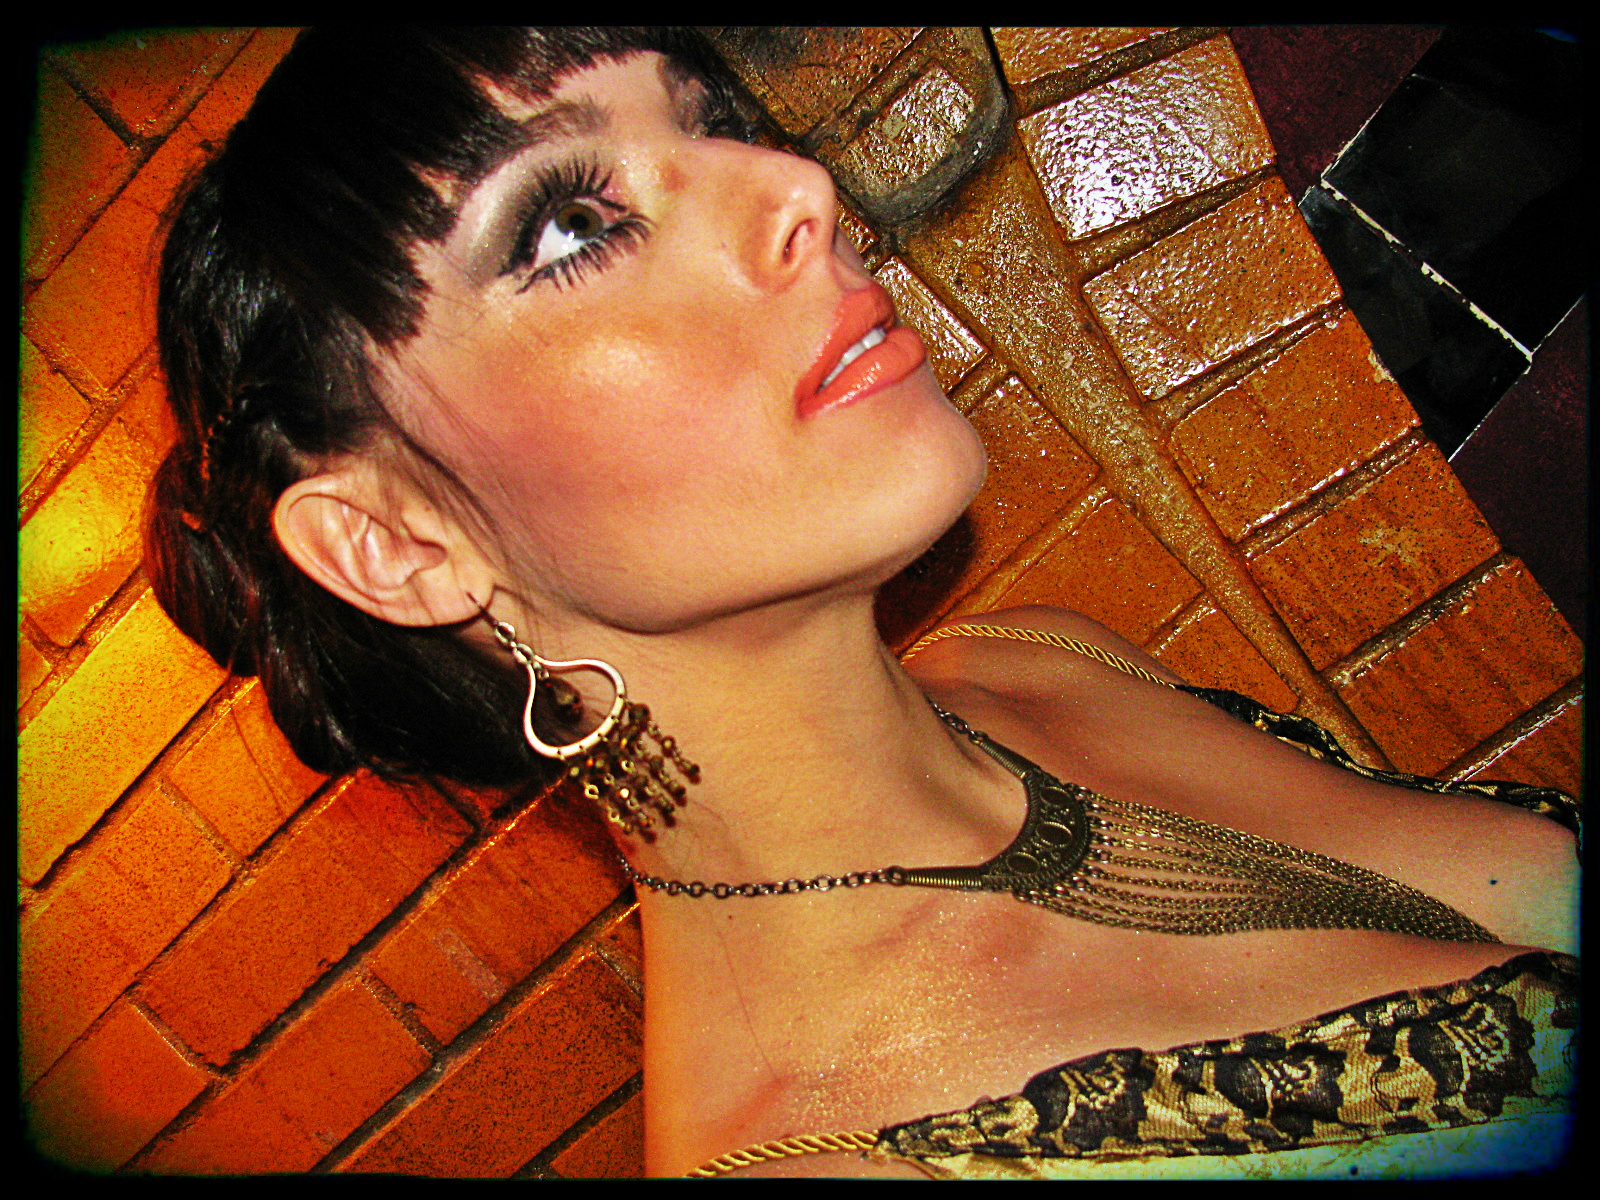 Savannah Prochnau had sparkly golden chandelier earrings and a necklace with several pieces of antique brass chain.